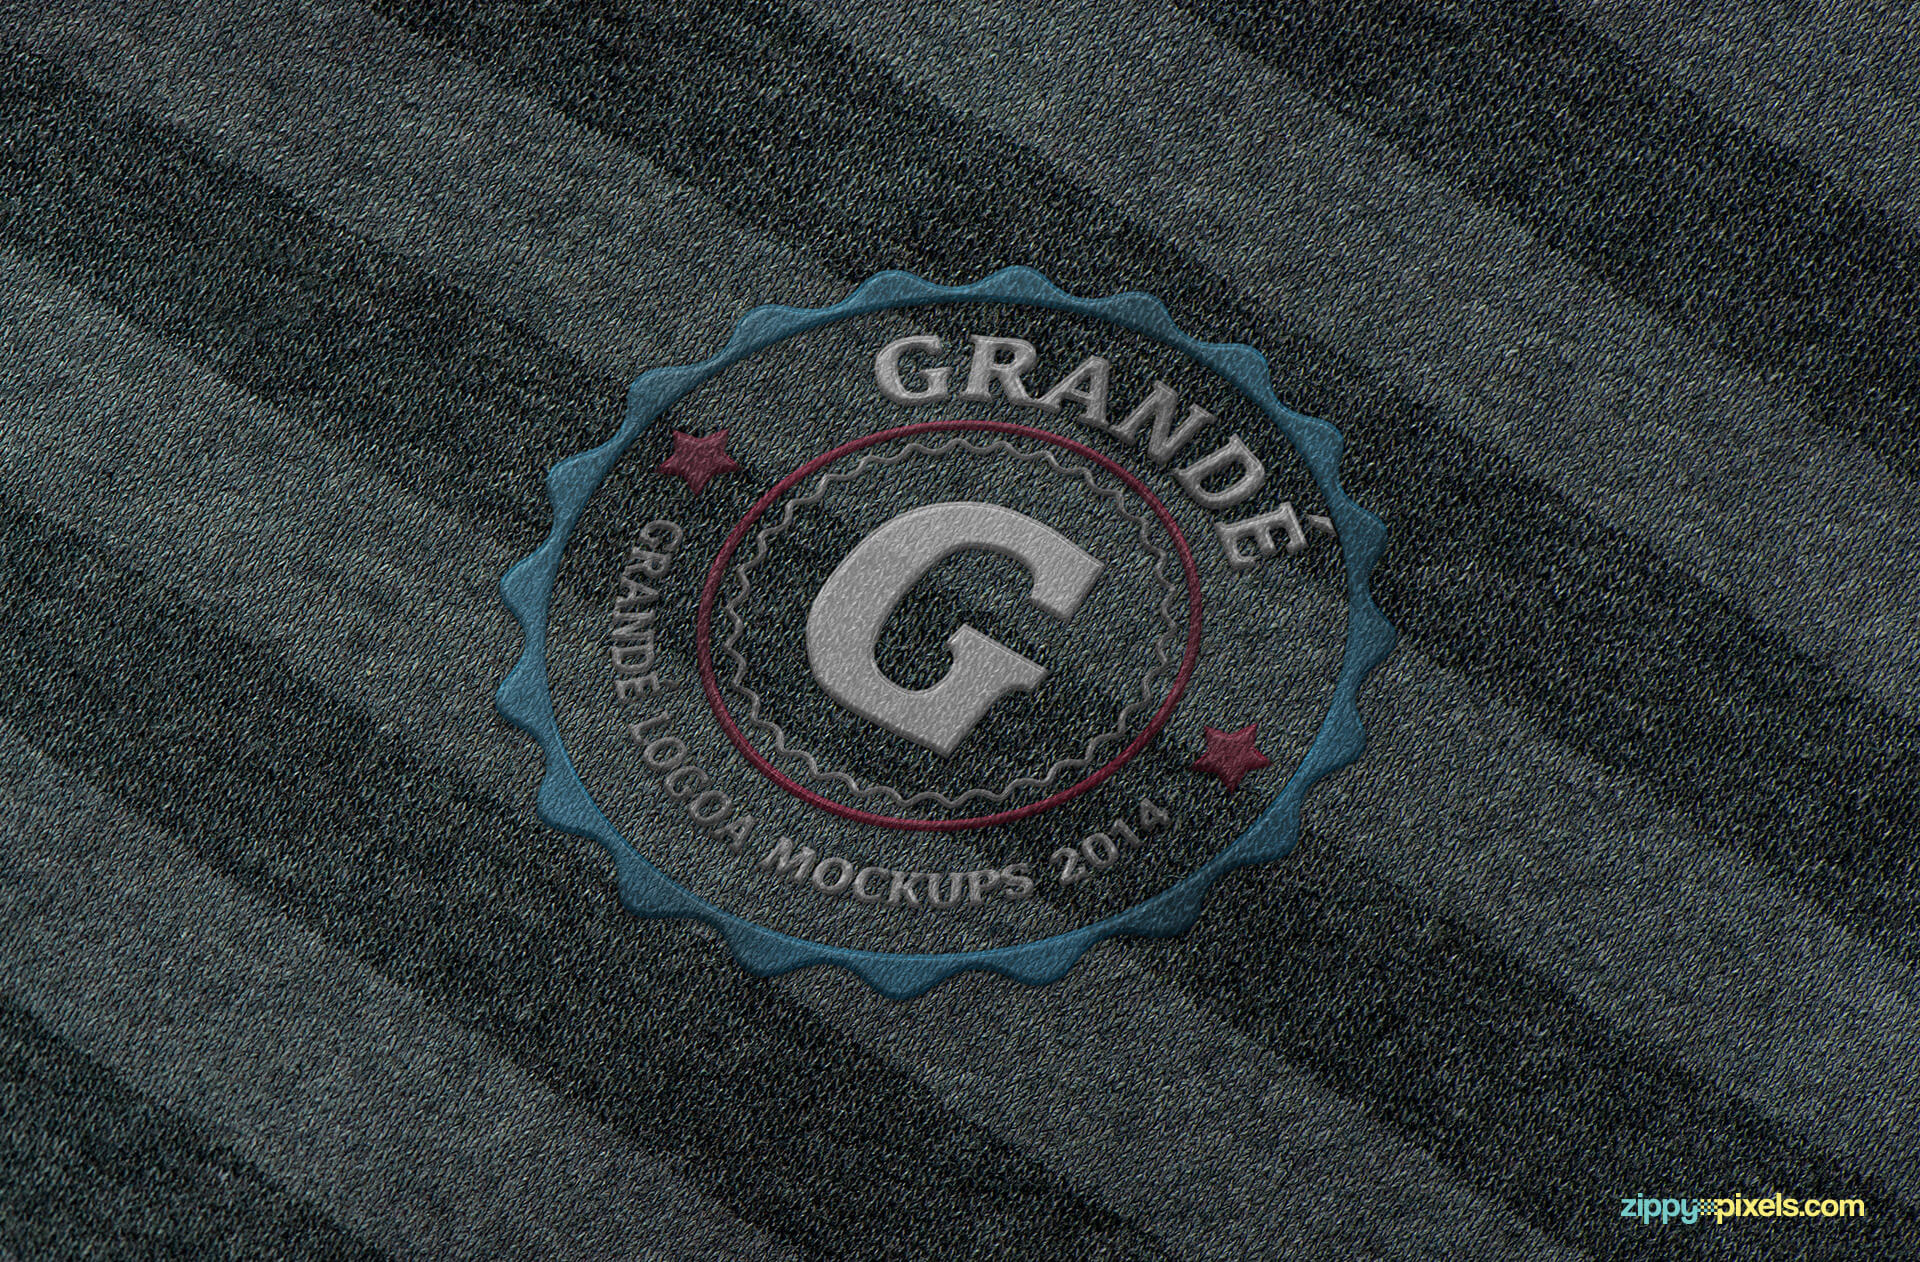 Mockup of Embroidered logo on knitted fabric